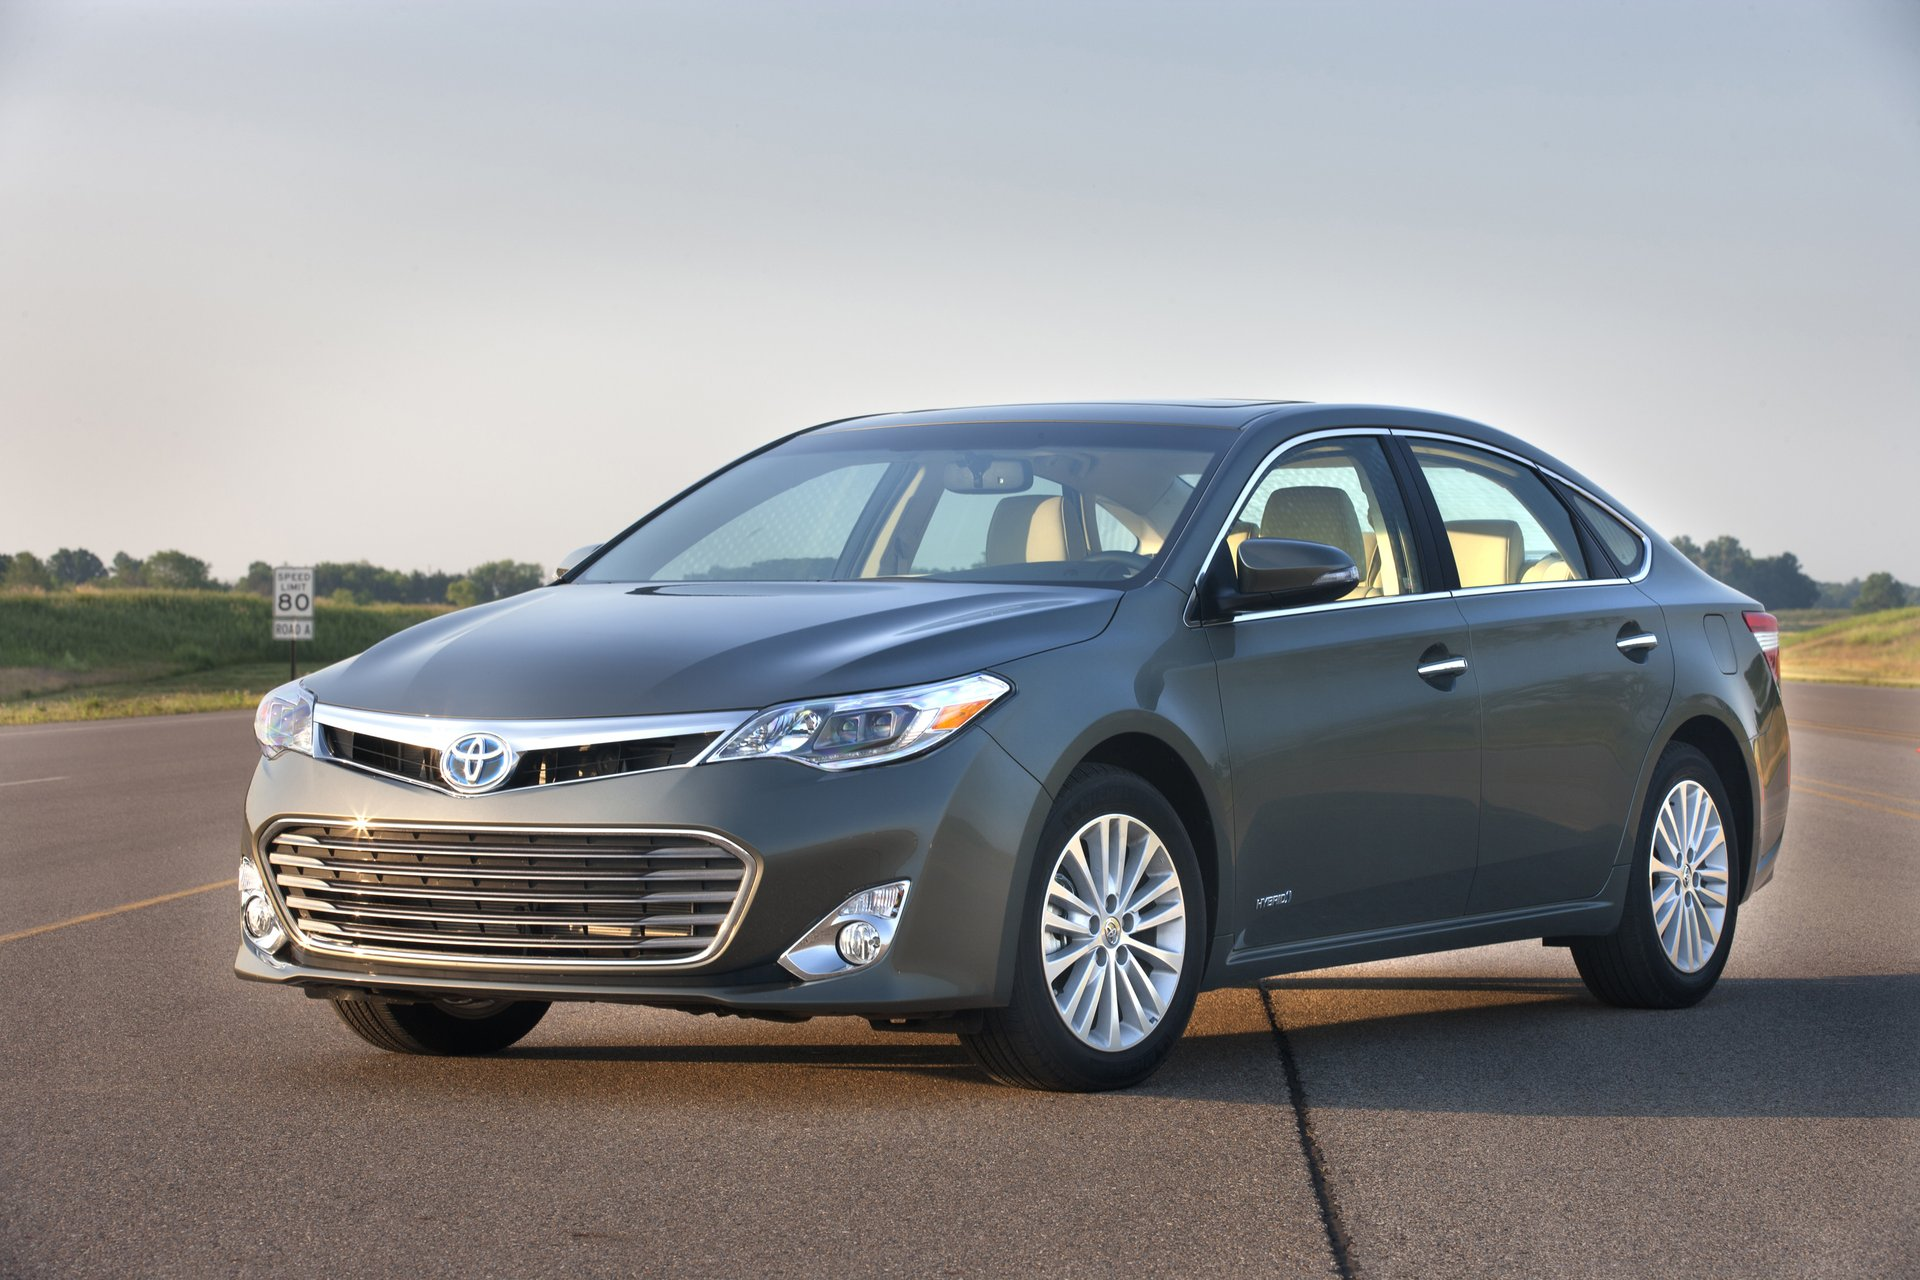 toyota car review test new avalon drive buy expert